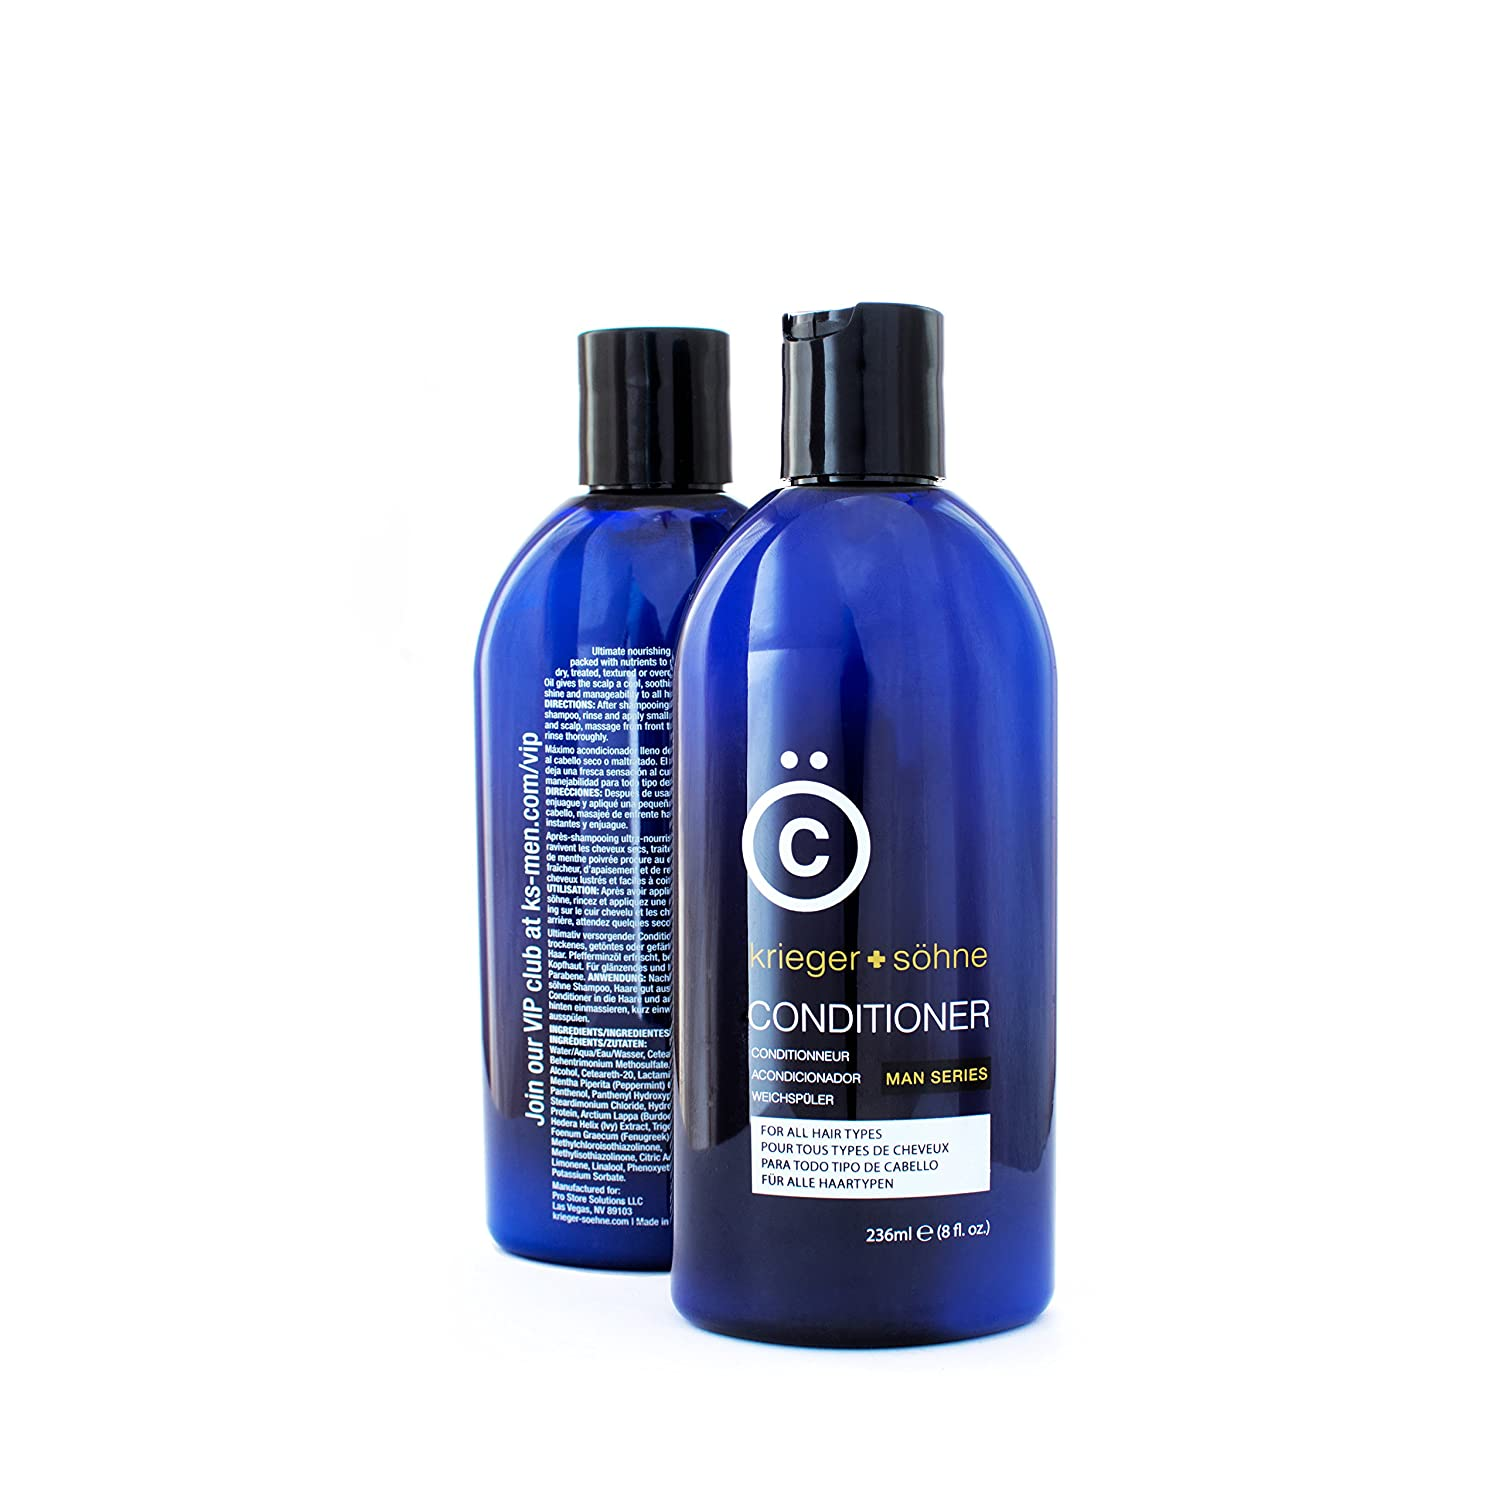 K + S Men's Hair Conditioner - Stylist-Level Hair Care Products for Men - Infused with Peppermint Oil for Dandruff & Dry Scalp (8 oz Bottle)